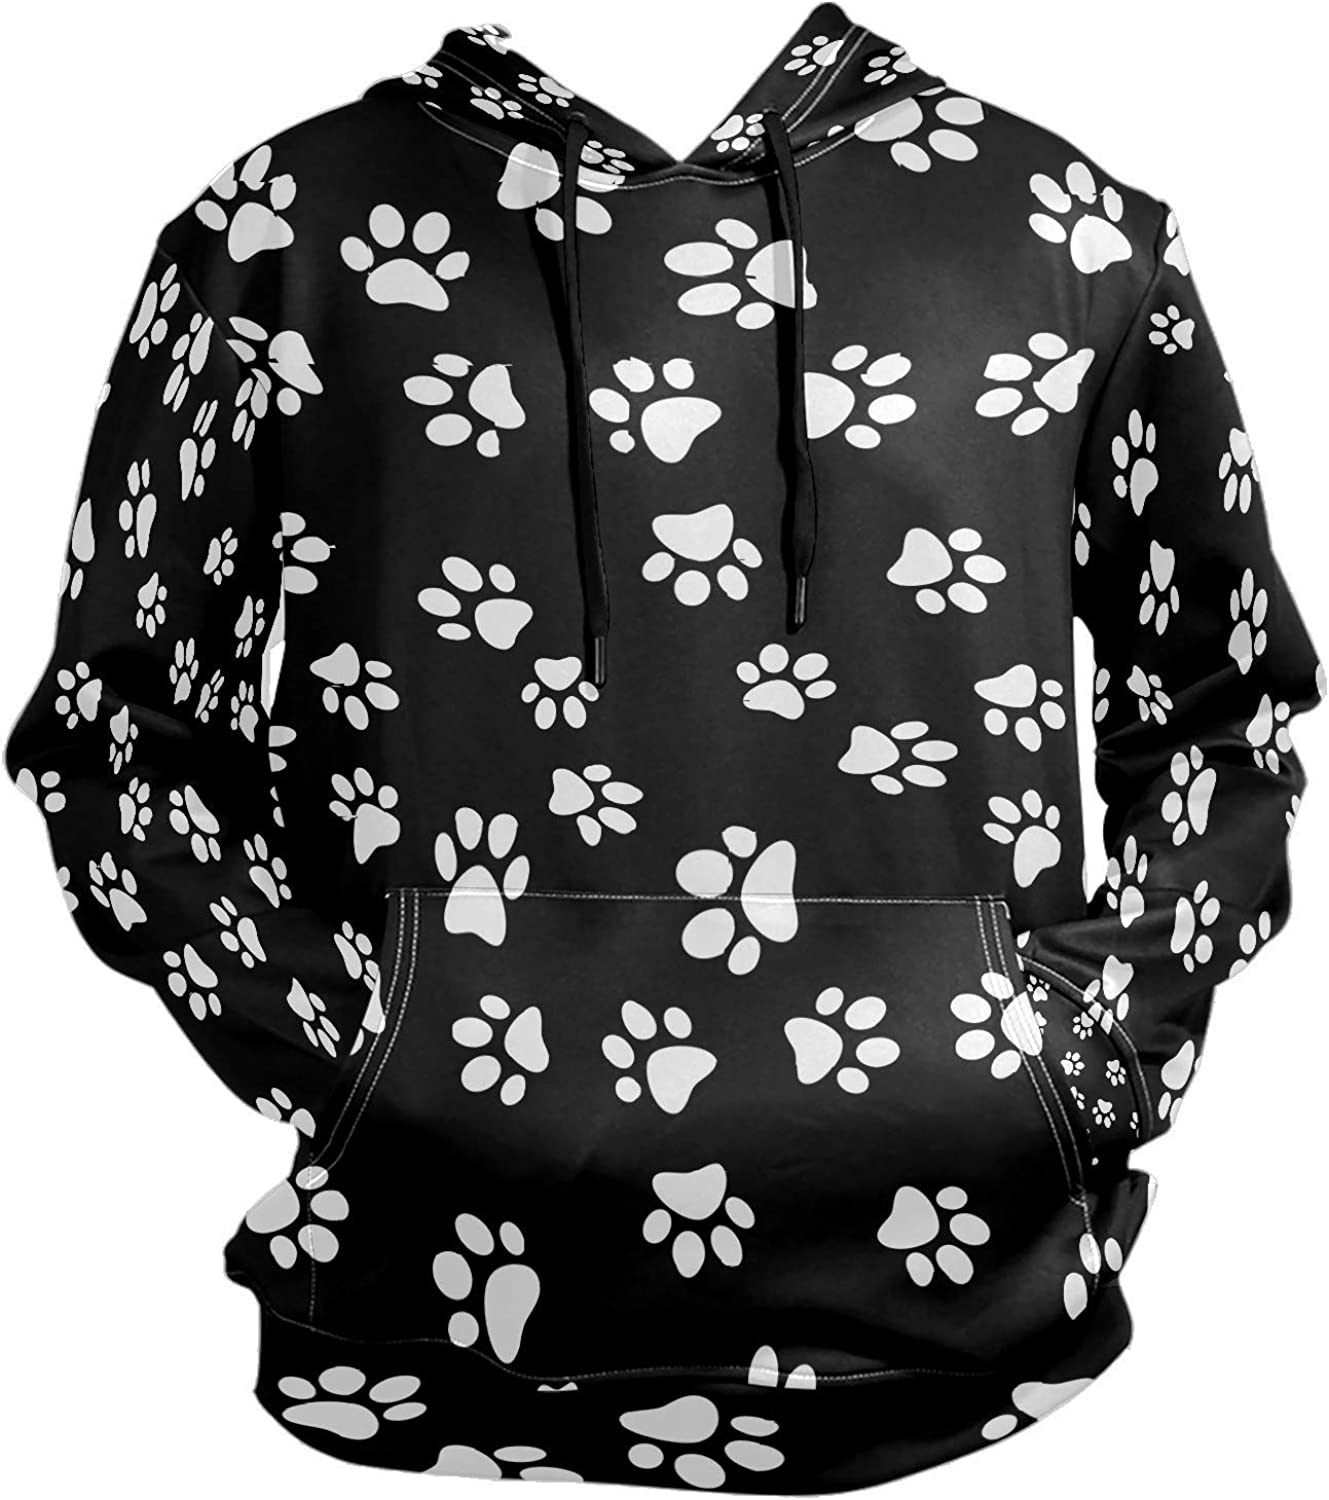 Men's Sport Hoodie Dog Puppy Paw Print Big and Tall Hoodies for Men Women Oversized Hooded Sweatshirt Hip Hop Pullover Hoodie Midweight Hood for Boys Girls